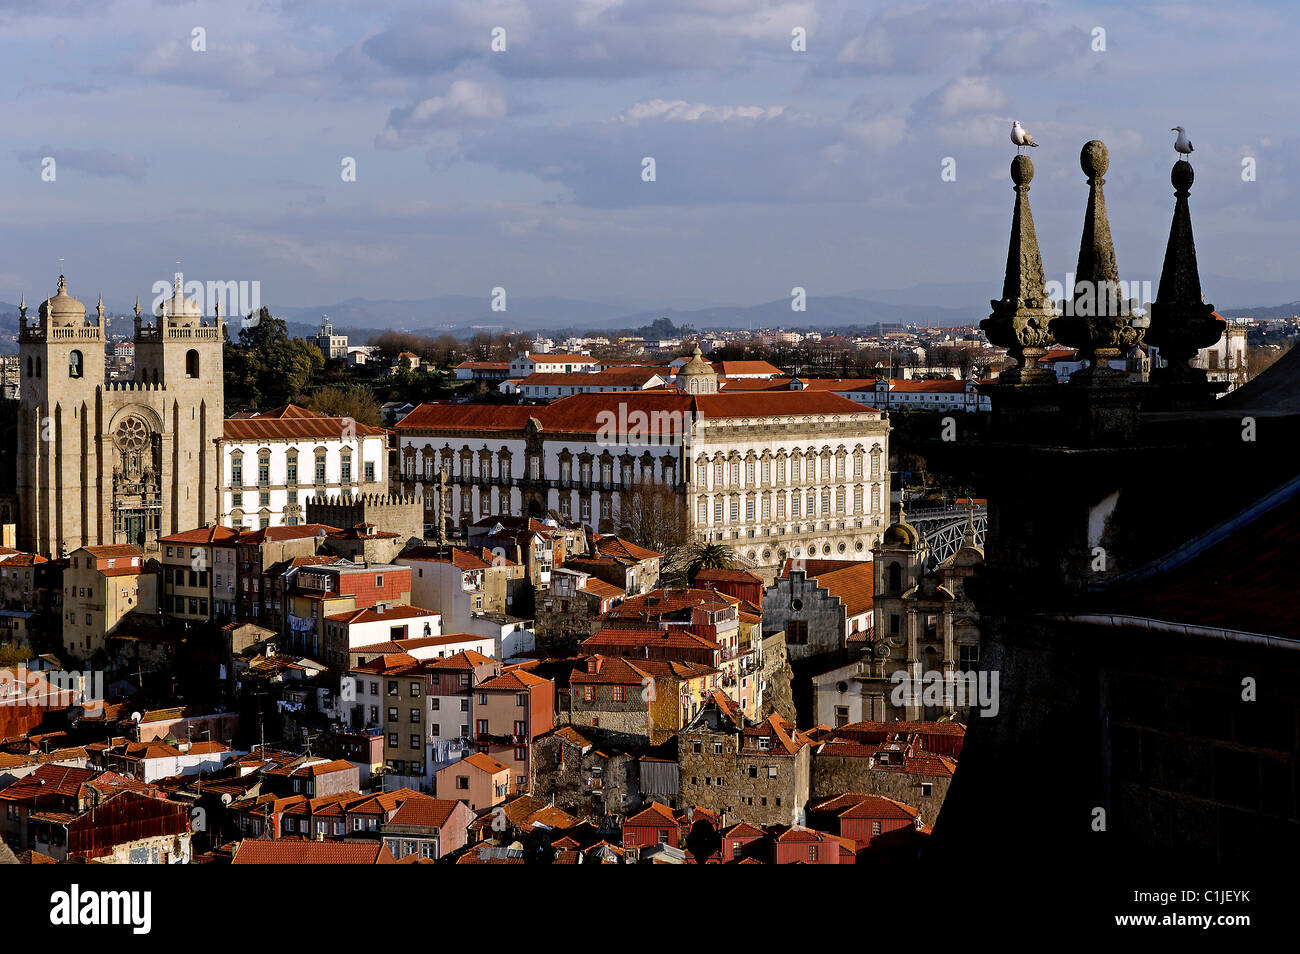 Portugal, Porto, view from the former prison of Porto Court of Appeal (1752) - Stock Image